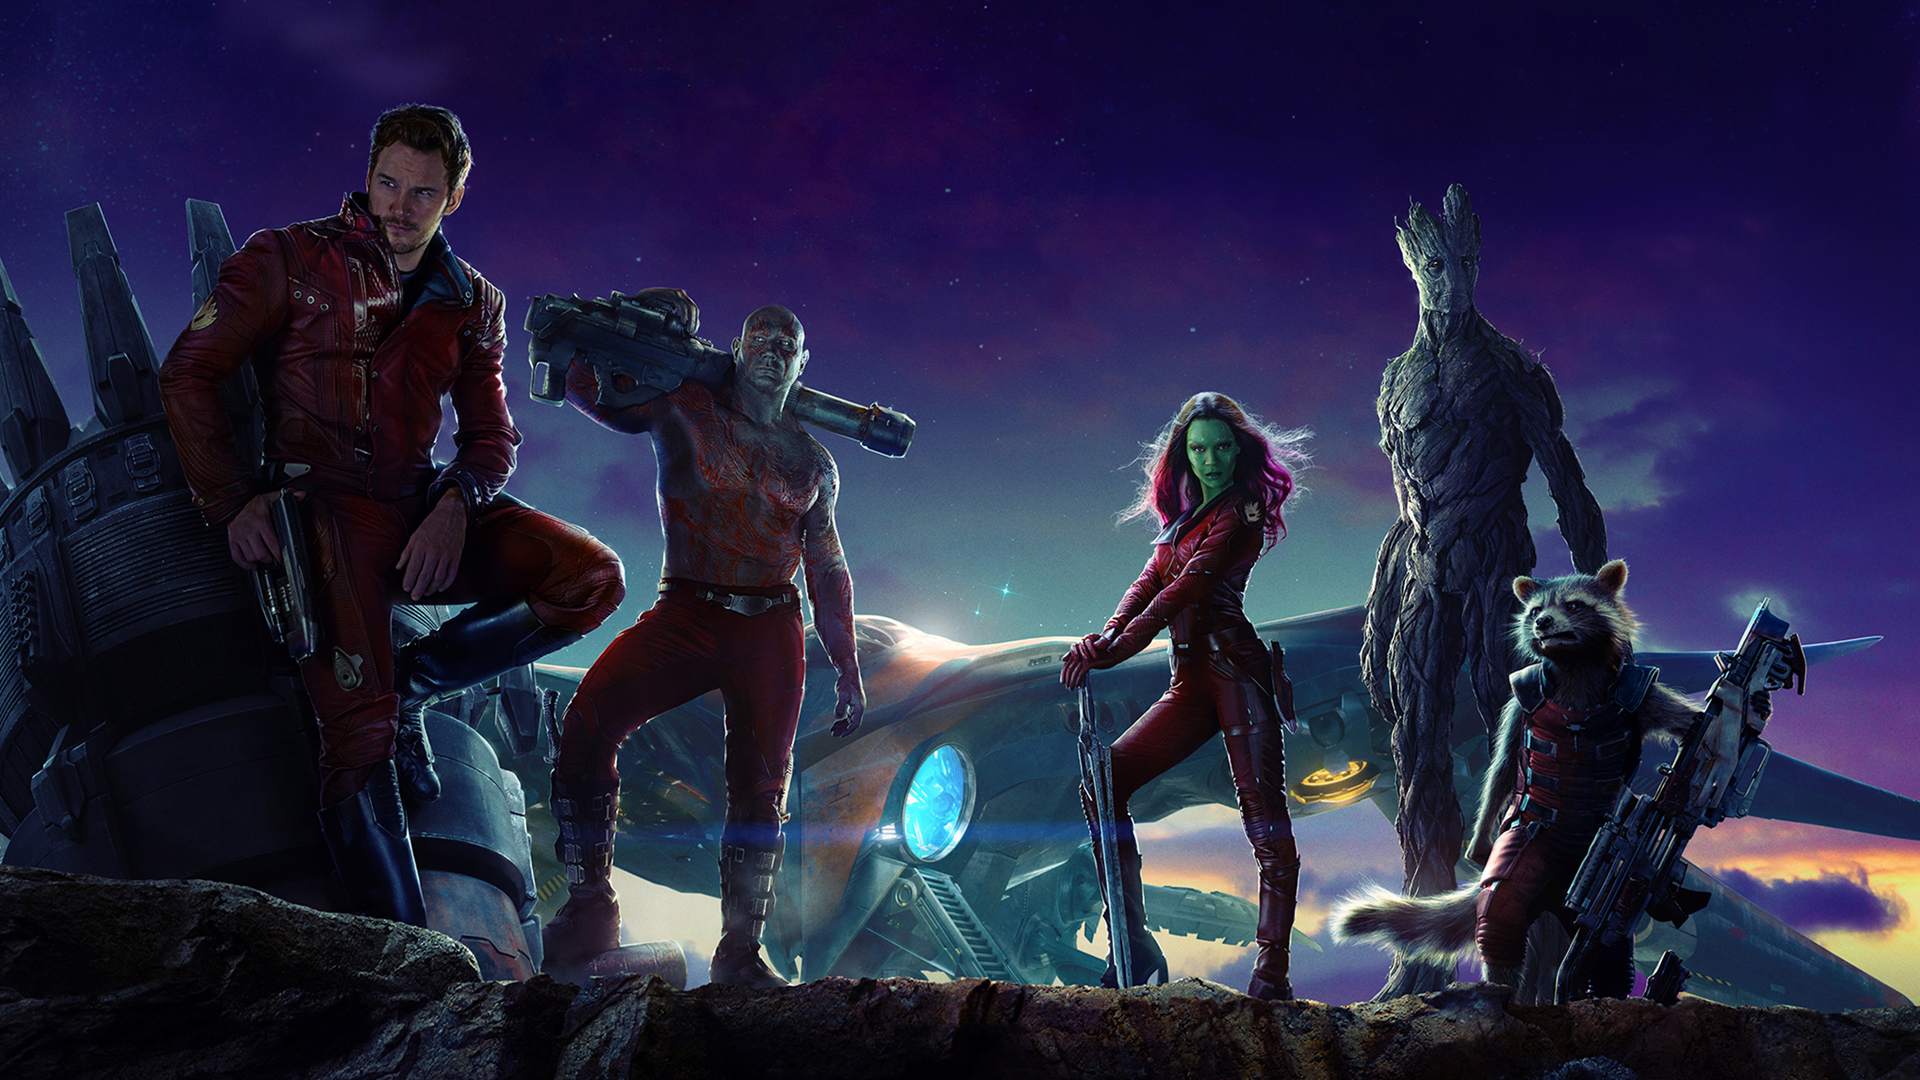 Free Download Guardians Of The Galaxy Movie Wallpaper Hd